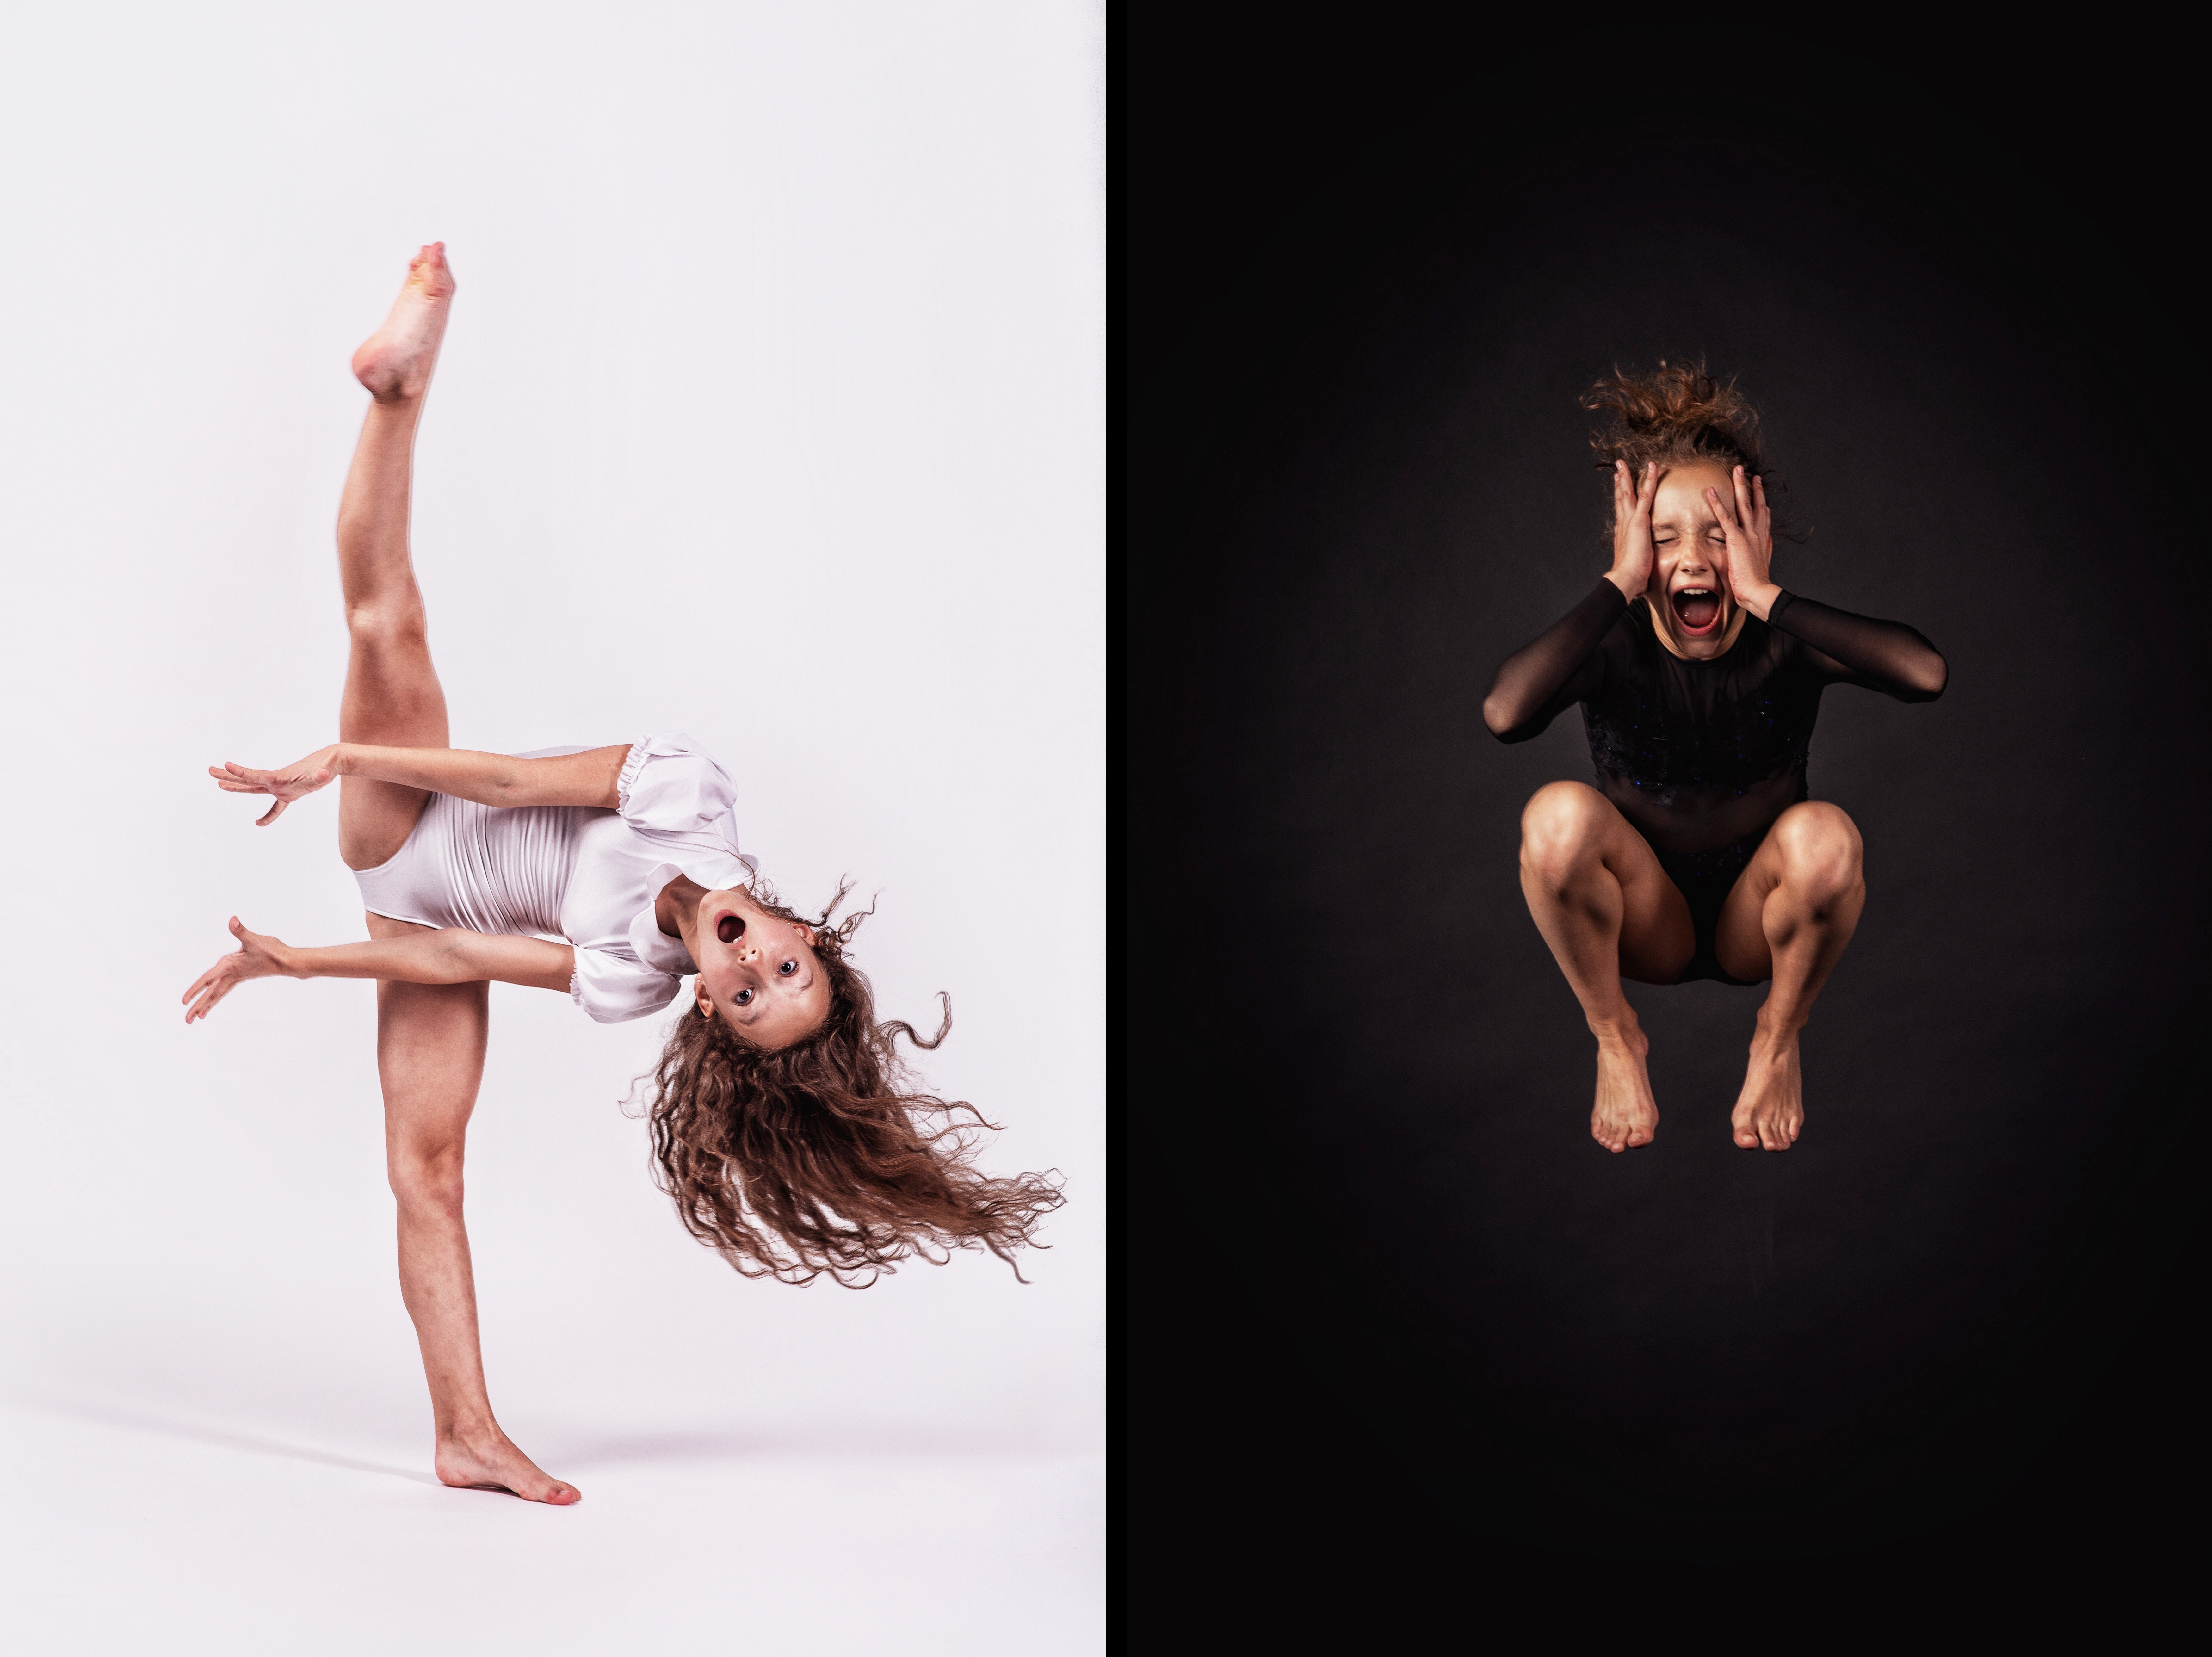 I Captured The Powerful Emotions And Amazing Talent Of A Little Romanian Dancer